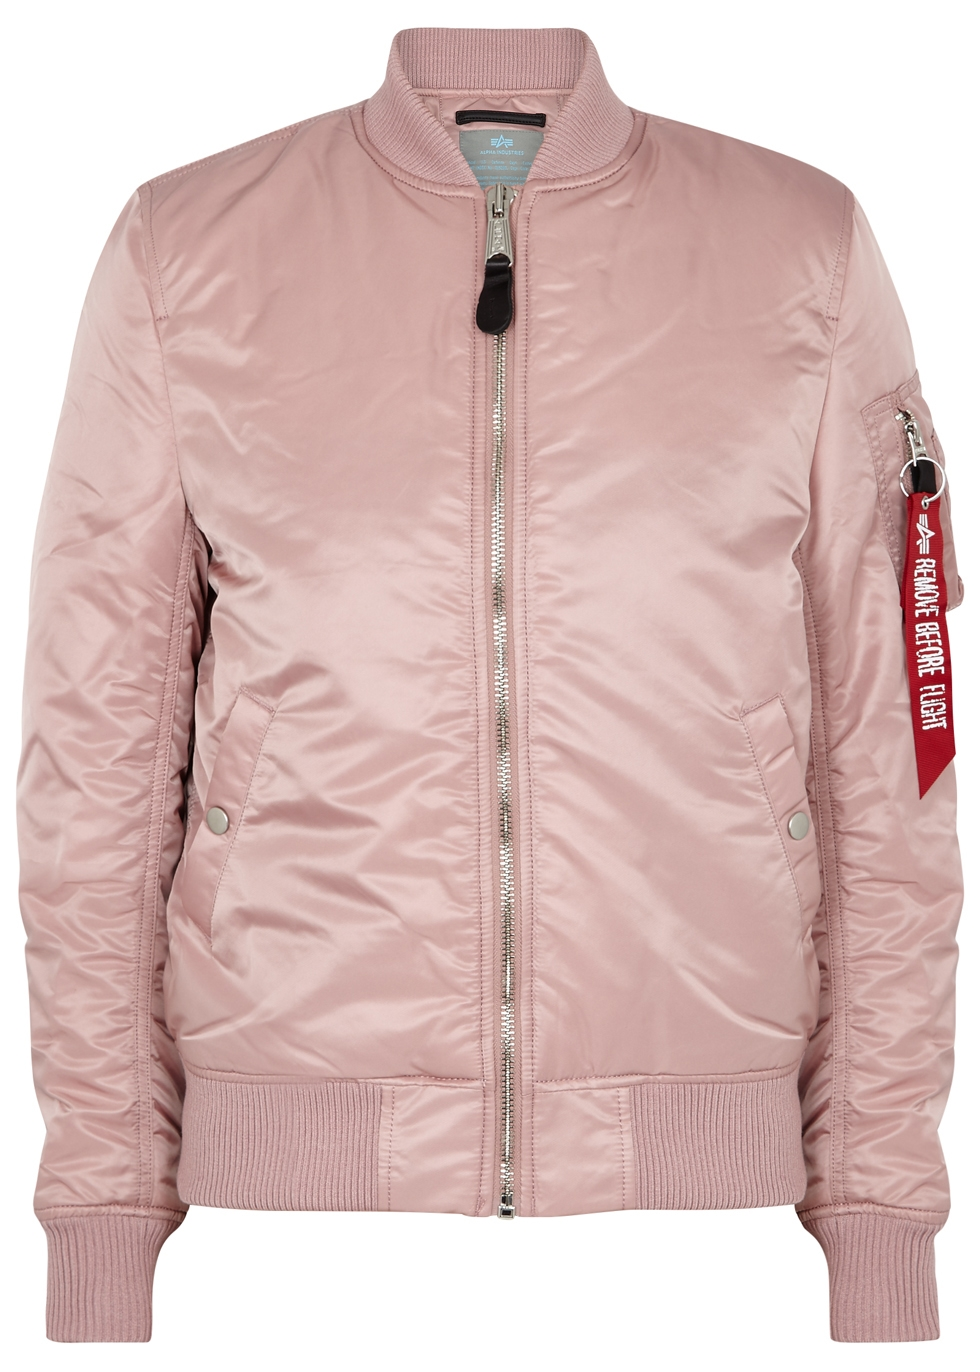 Ma1-Vf Blush Shell Bomber Jacket in Light Pink